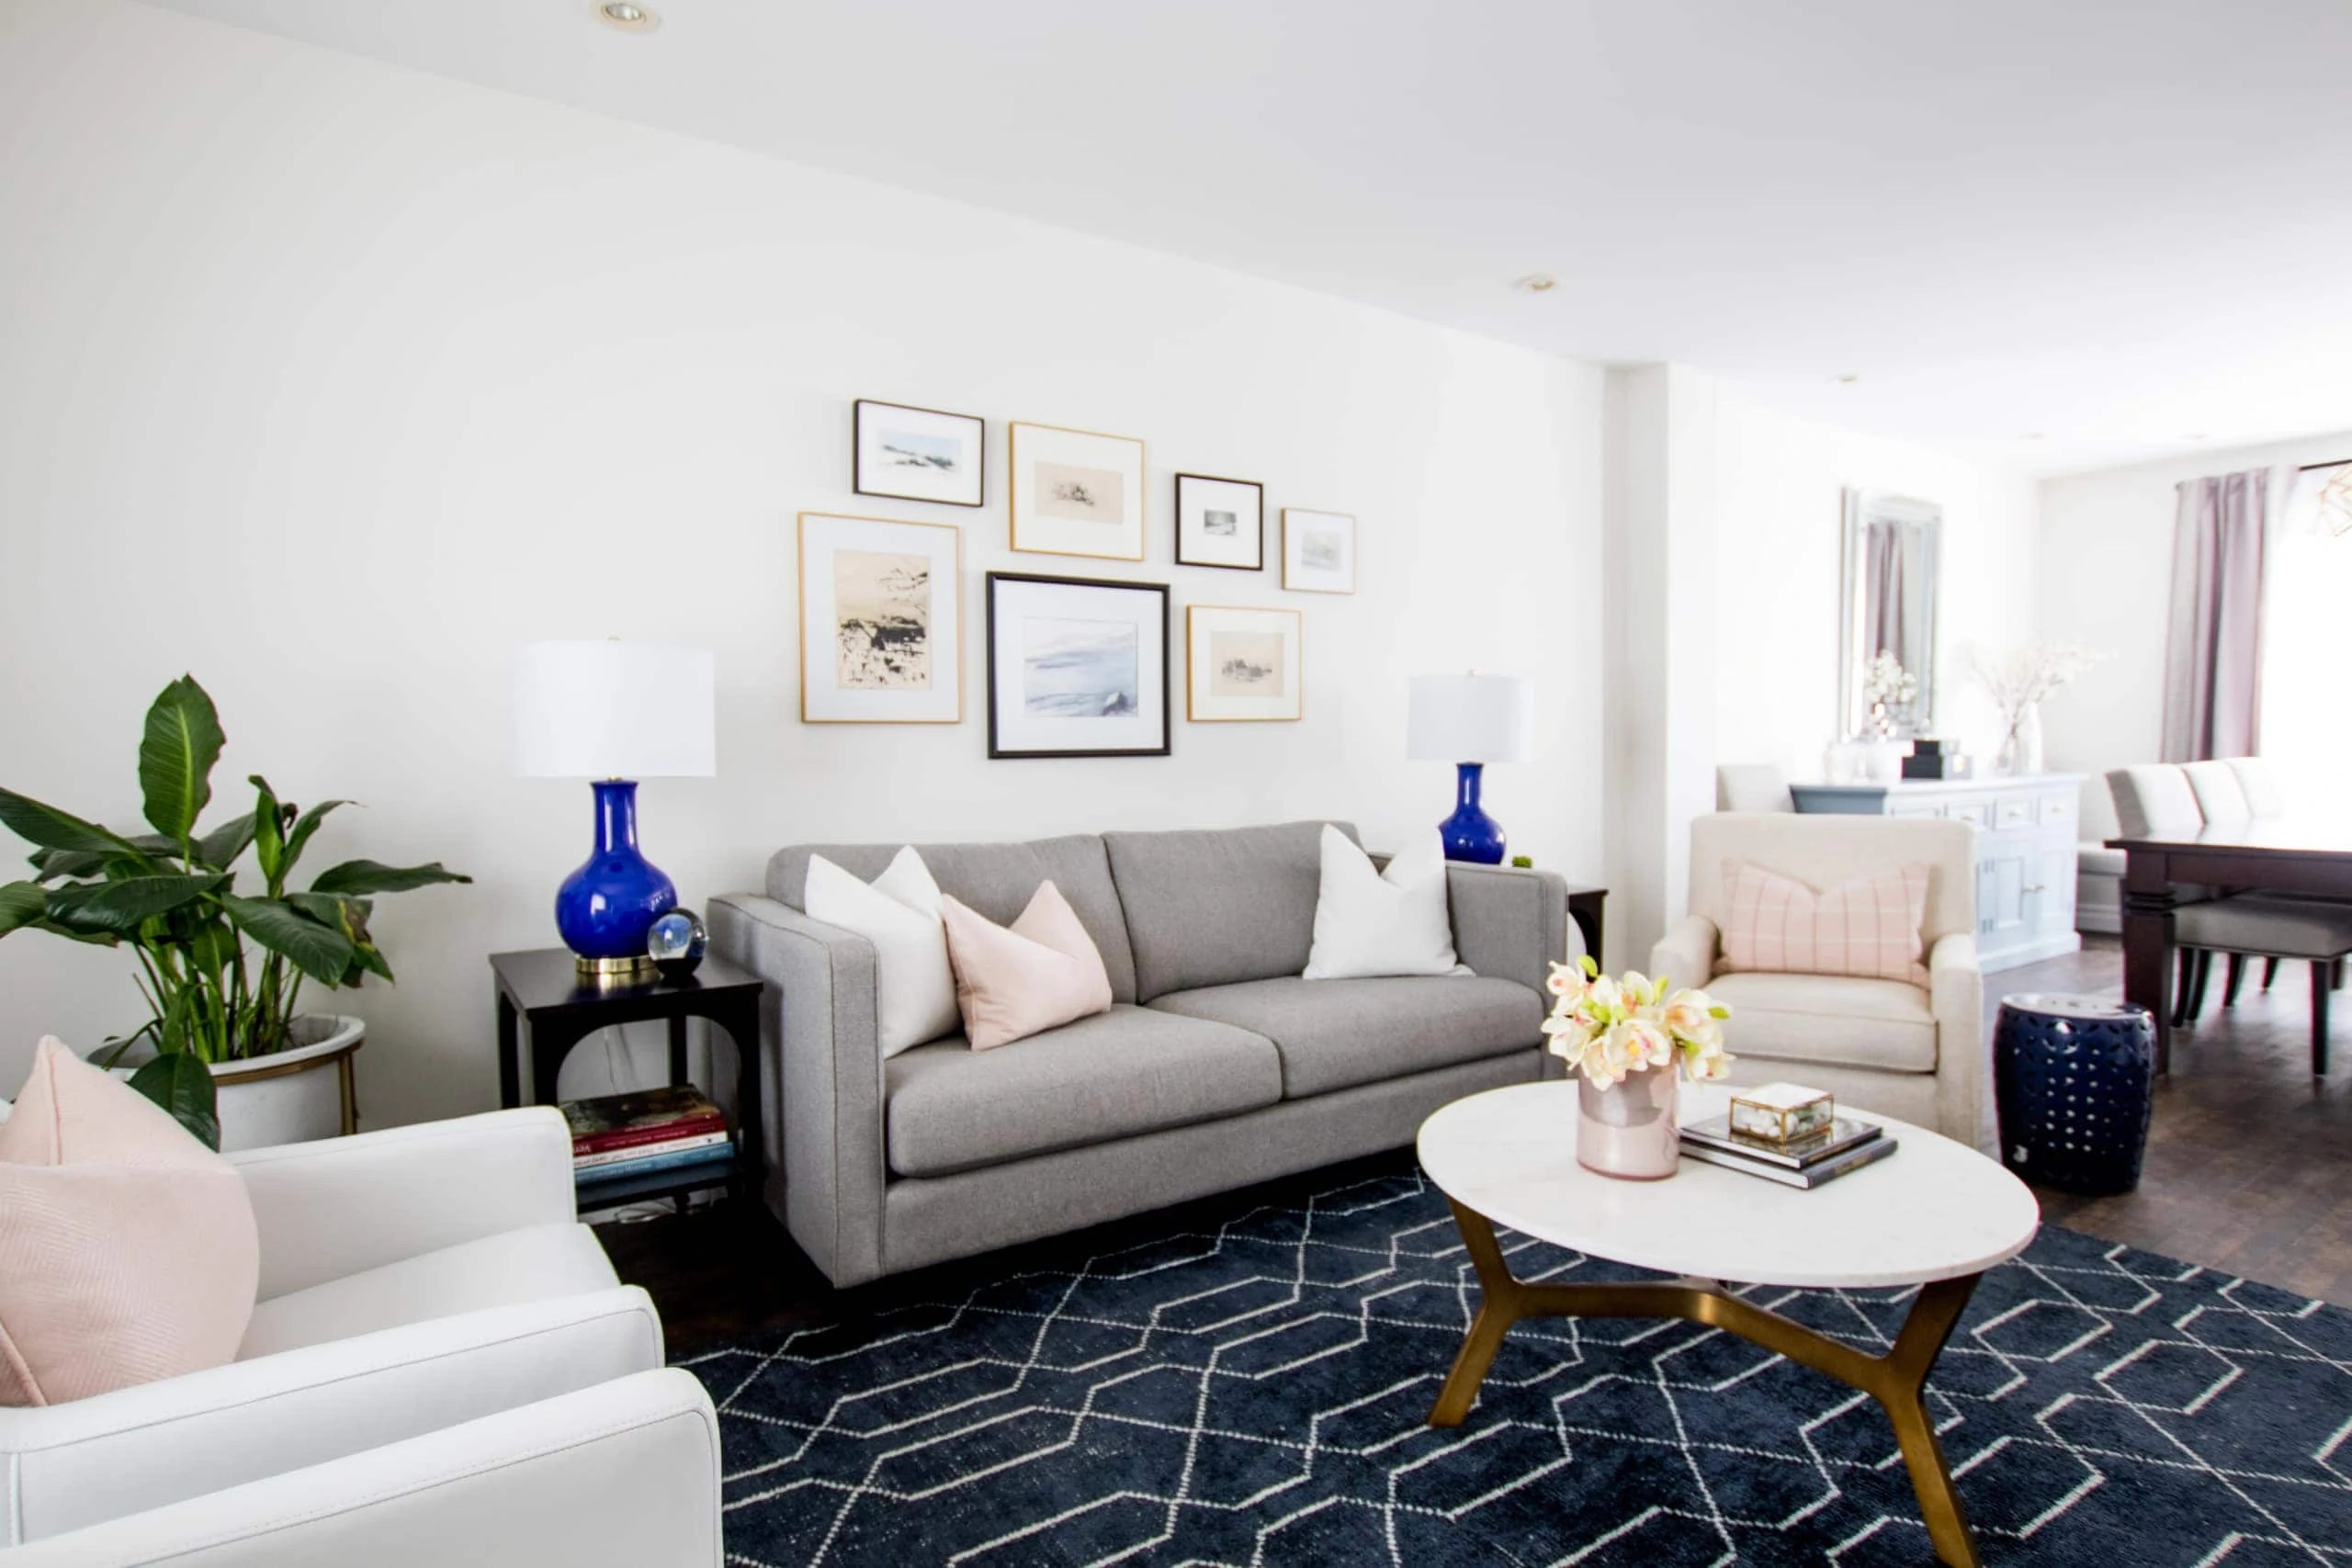 Bright living room with pictures above the couch